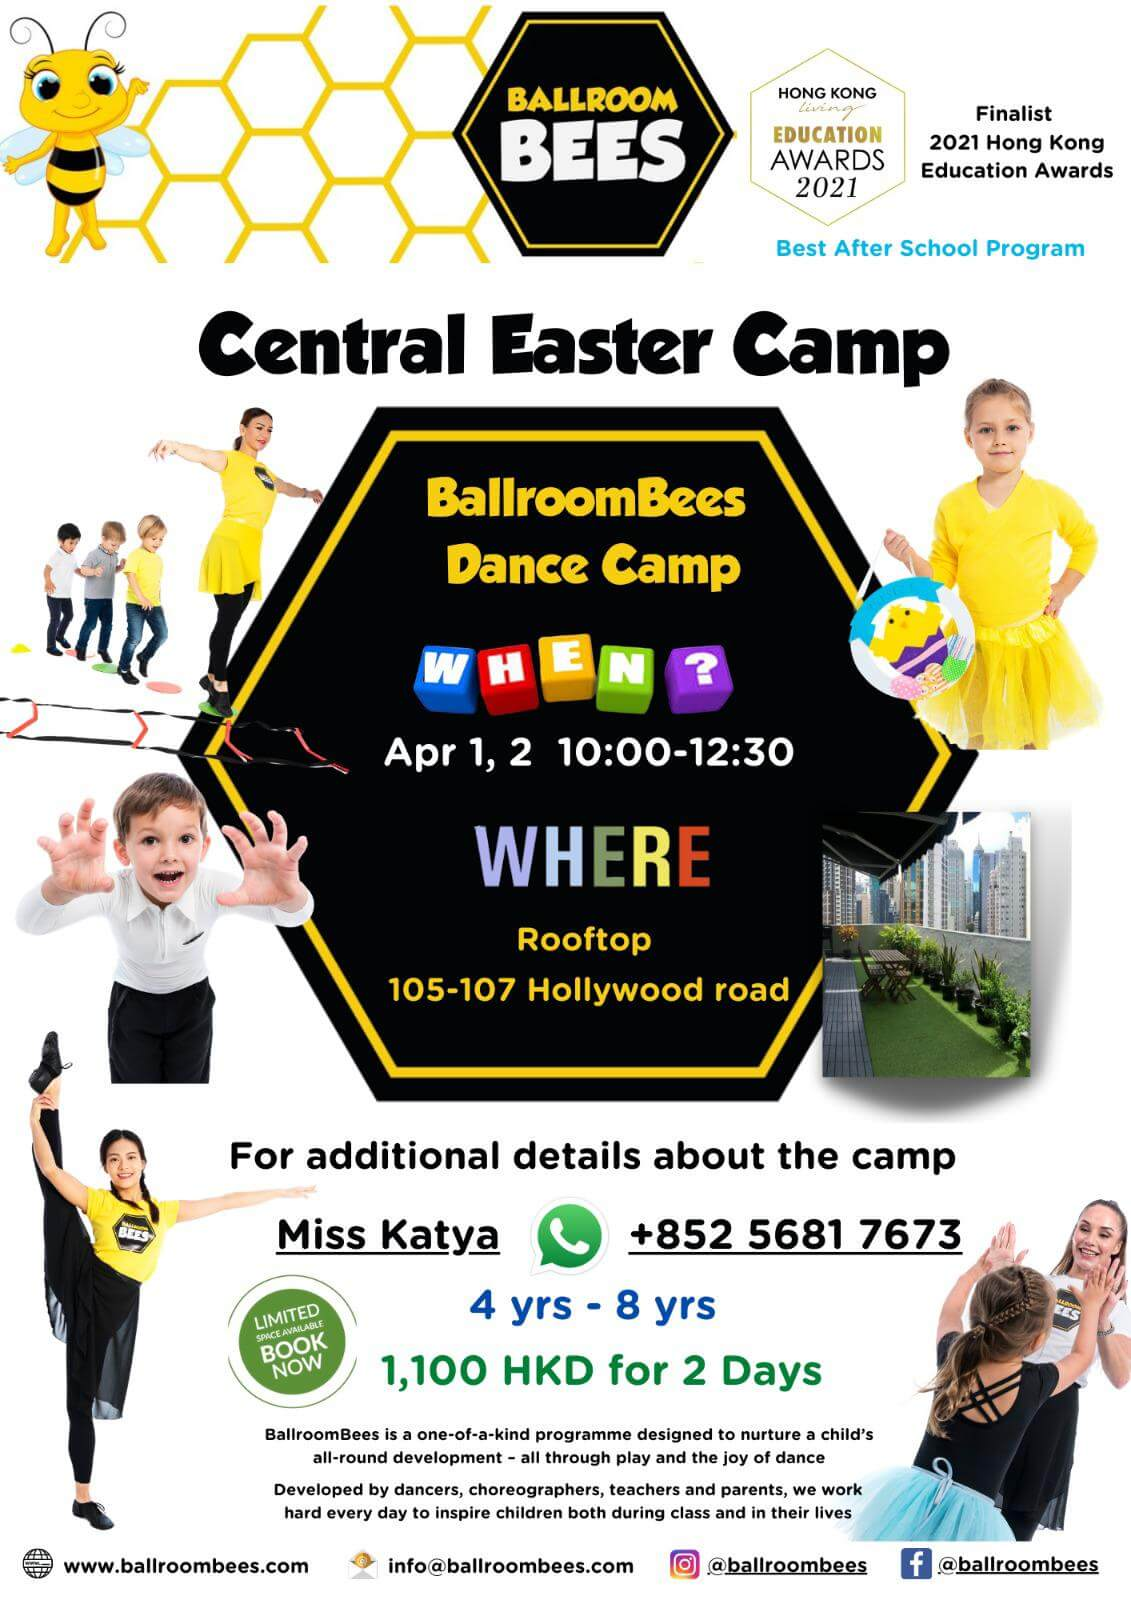 Central Easter Camp 2021